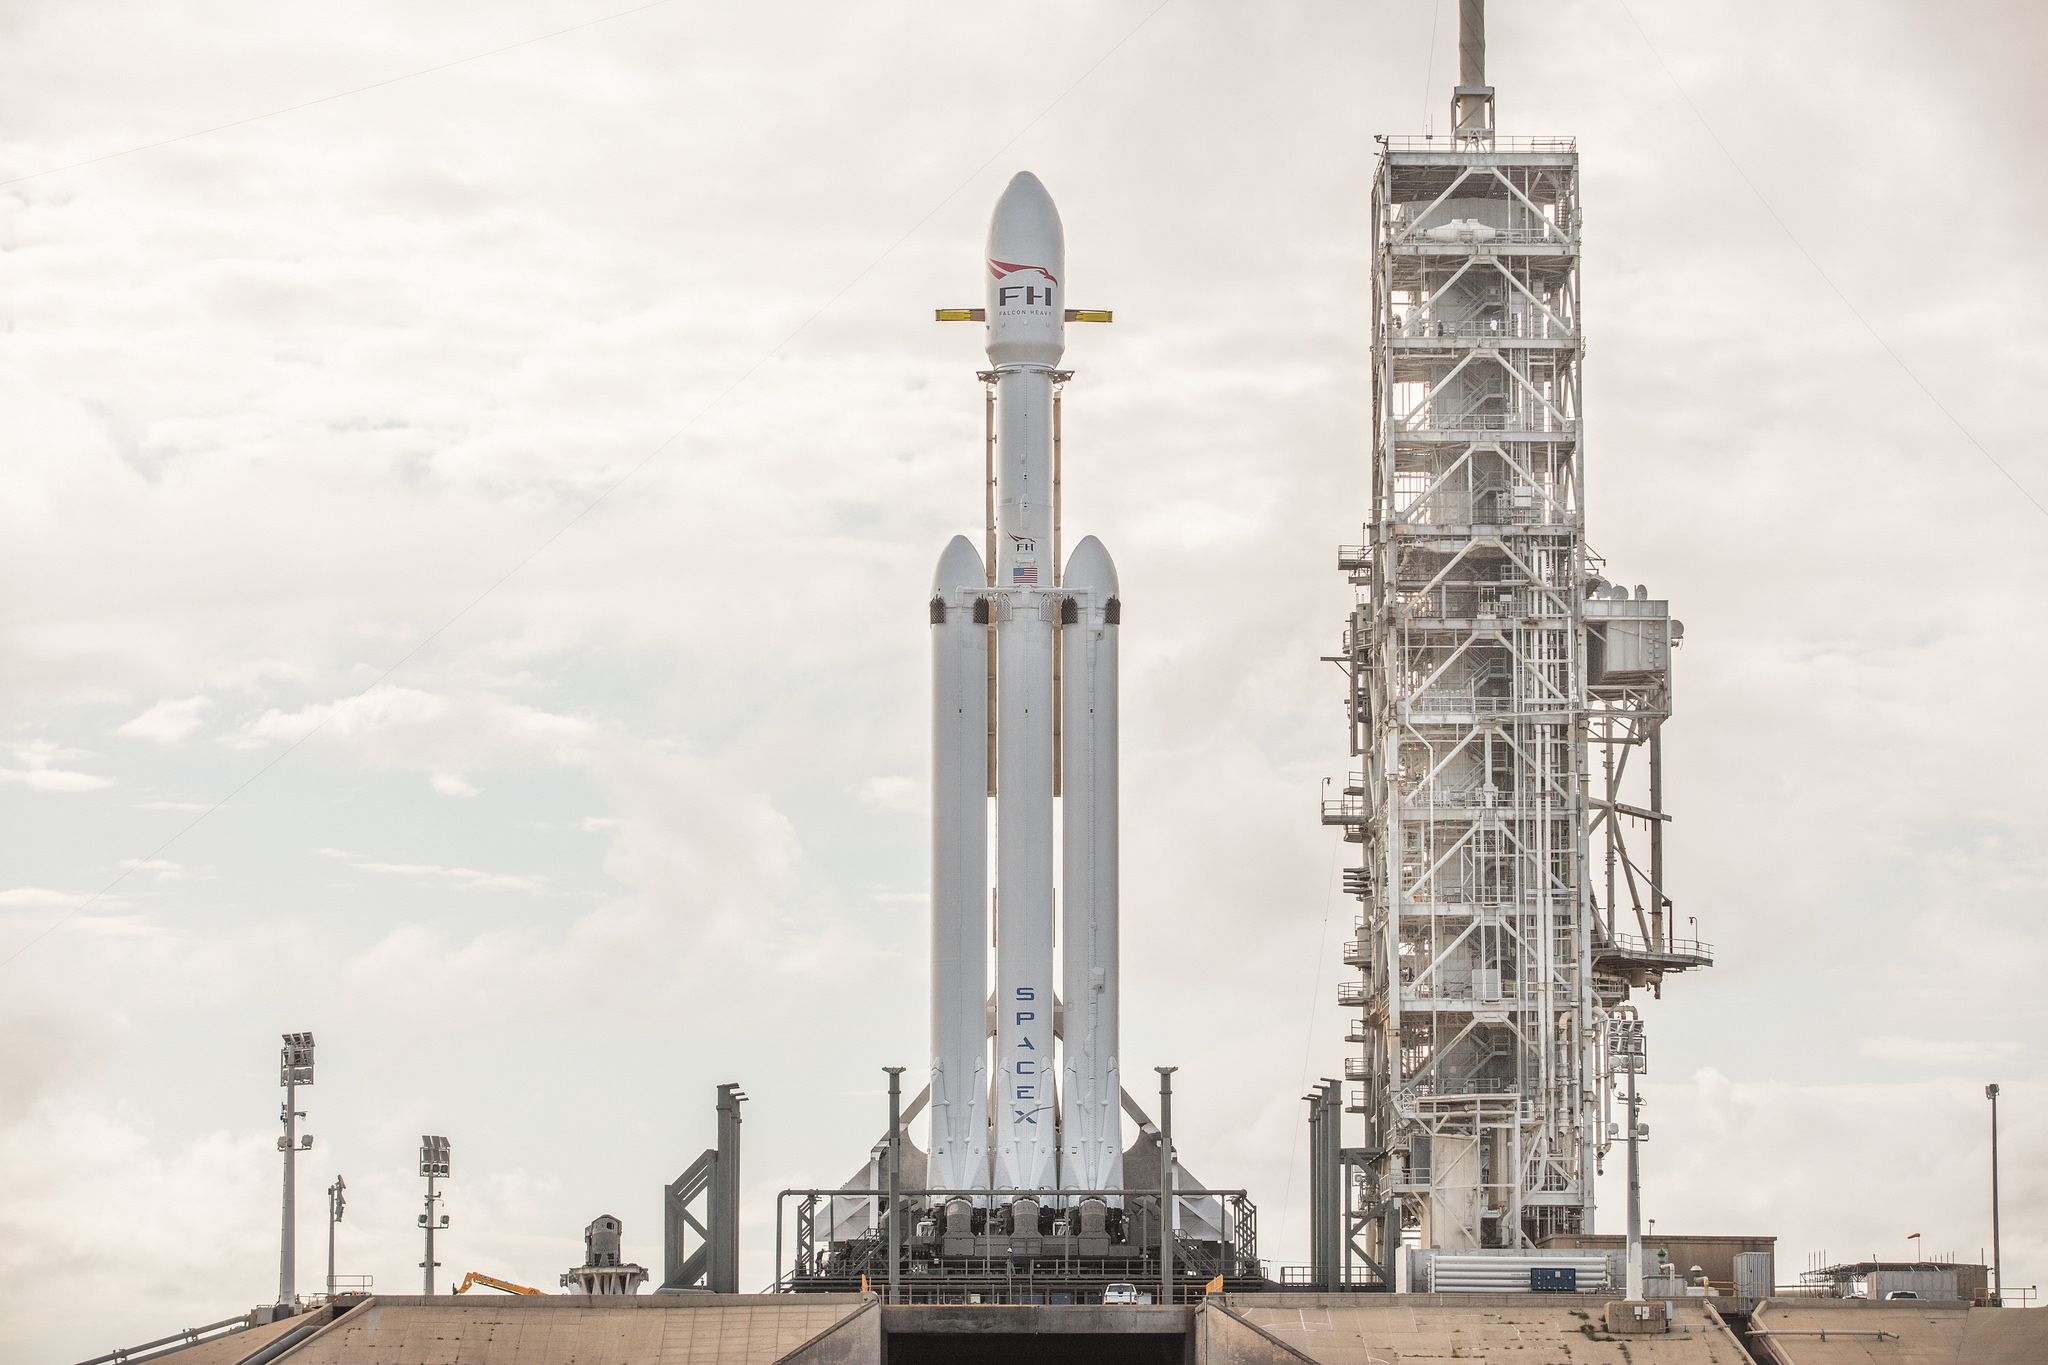 1_4_Falcon Heavy on Launchpad